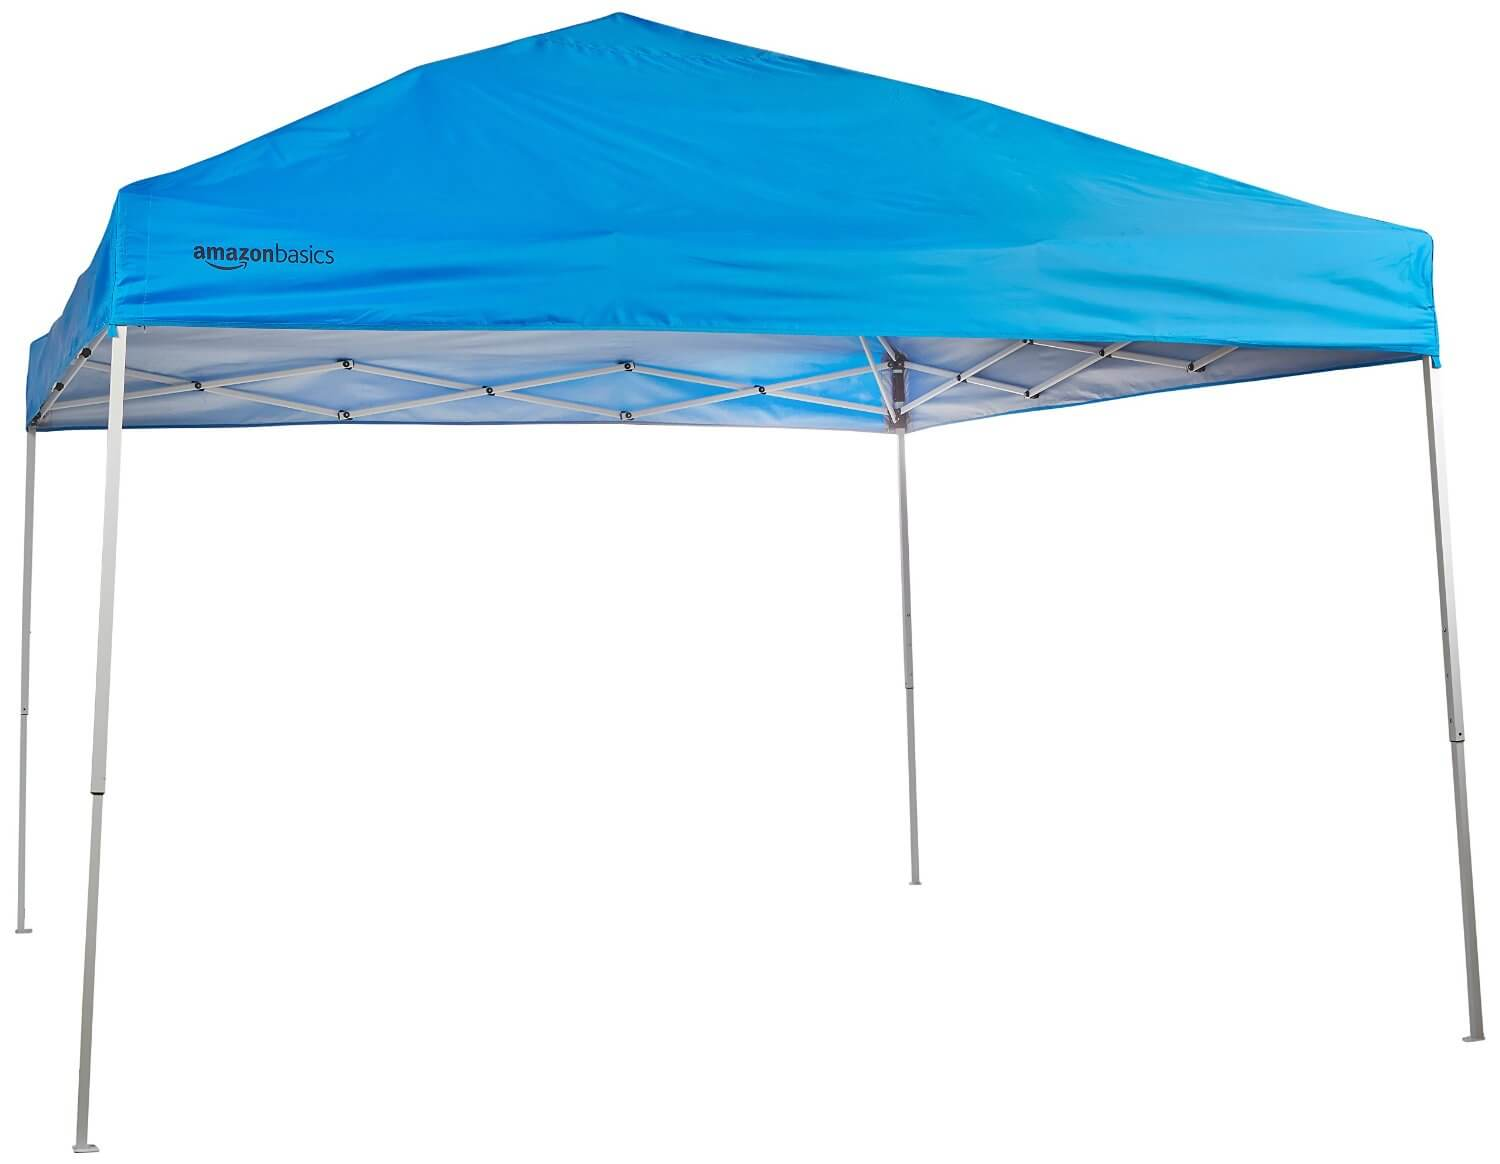 AmazonBasics Pop-Up Canopy Tent - 10 x 10 ft  sc 1 st  Best Beach Gear & Best Beach Canopy of 2018 - Reviews u0026 Buying Guide